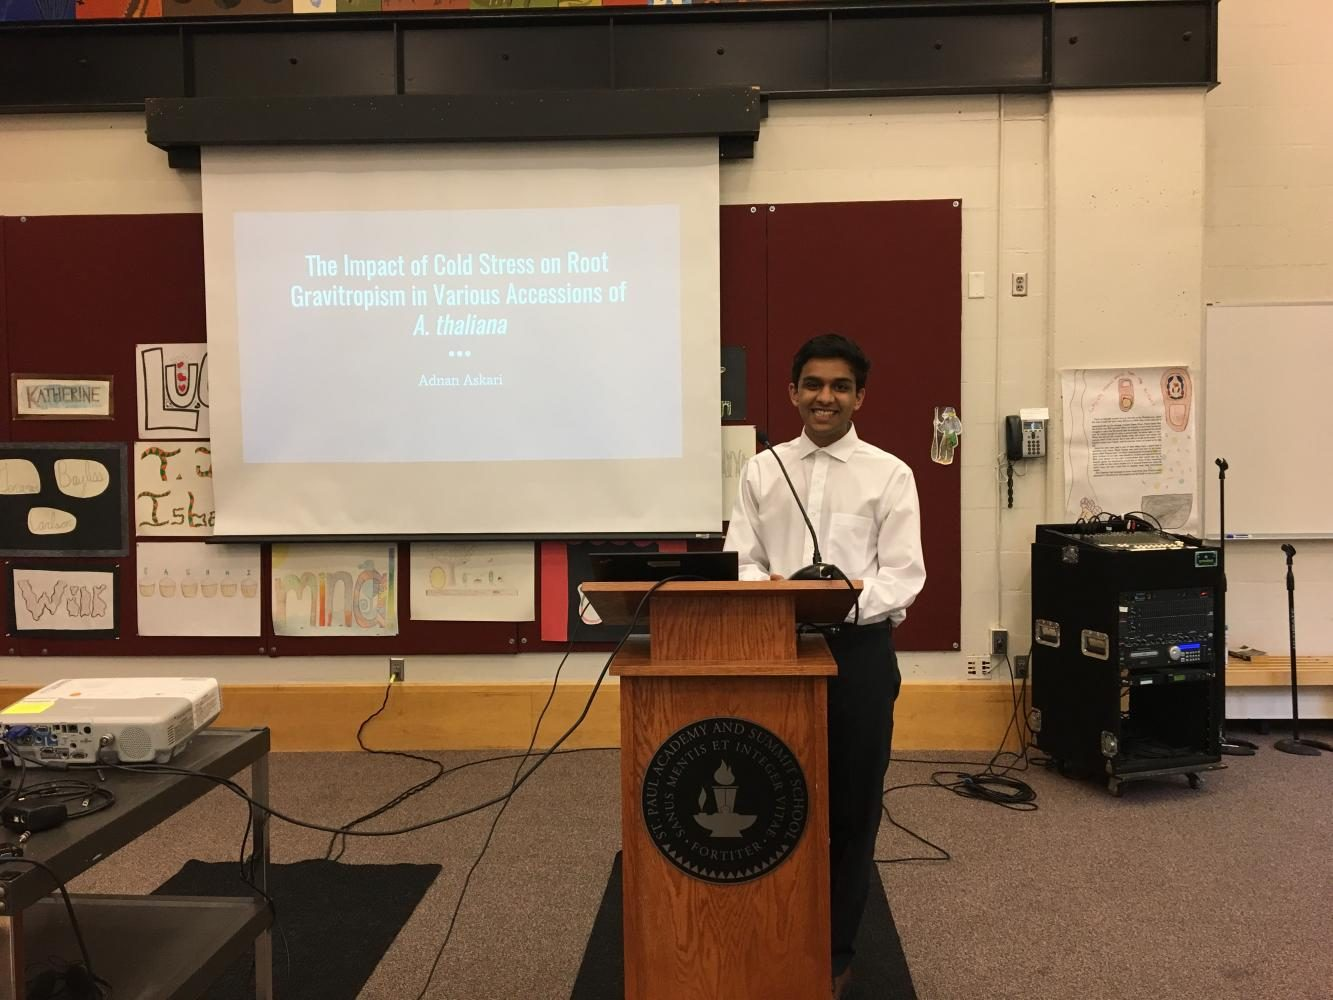 Junior+Adnan+Askari+was+the+first+presenter+of+the+night.+His+research+revealed+important+results+for+how+farmers+can+extend+their+growing+seasons.+